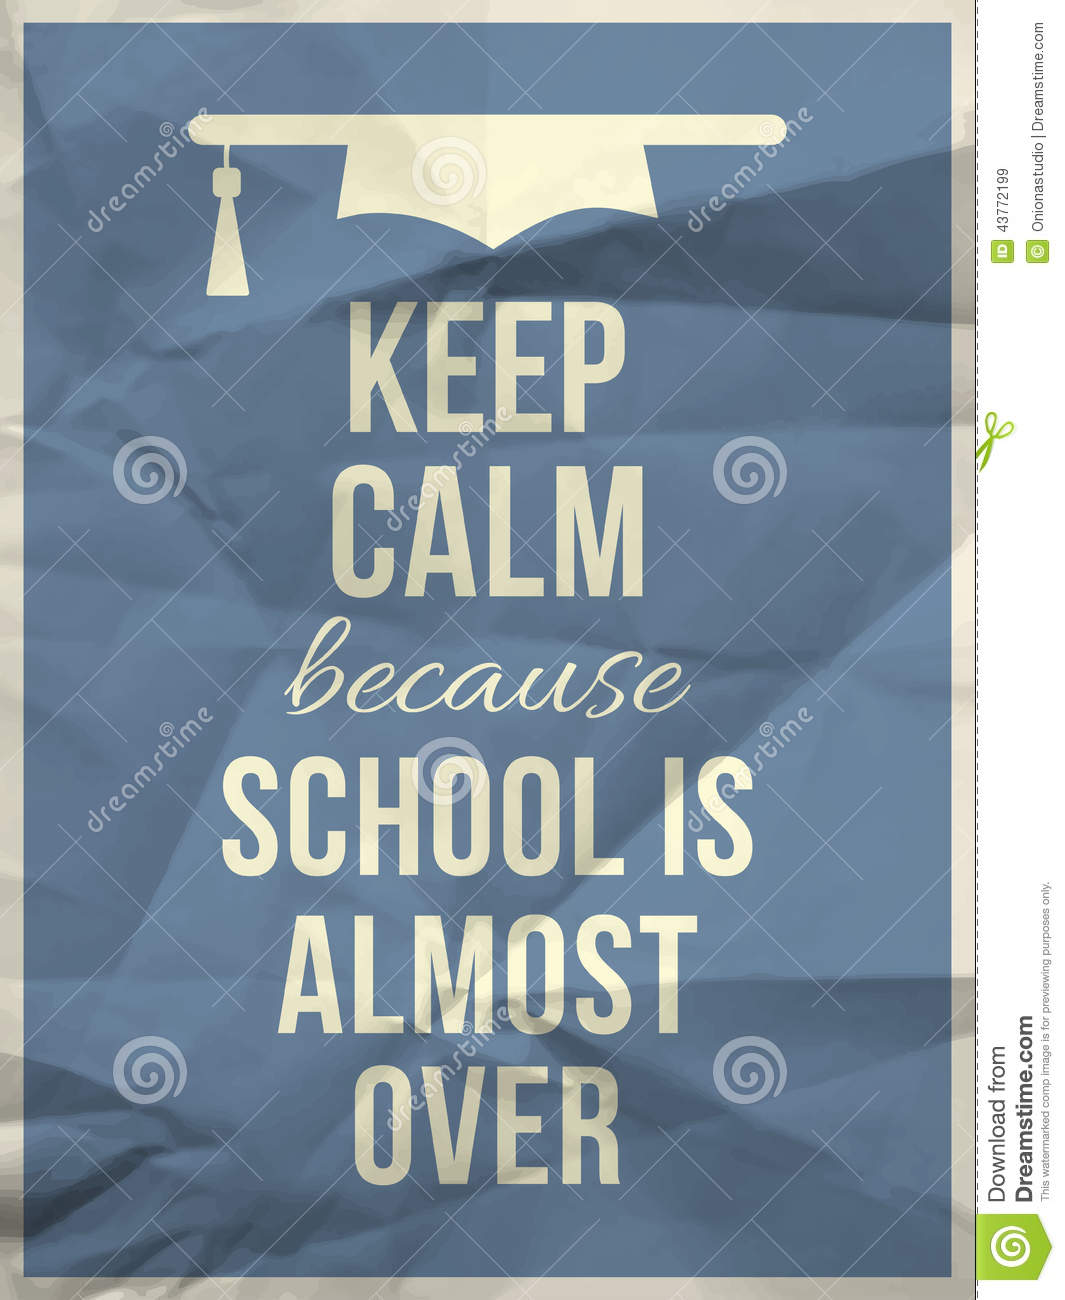 Keep Calm Because School Is Over Design Typographic Quote Stock